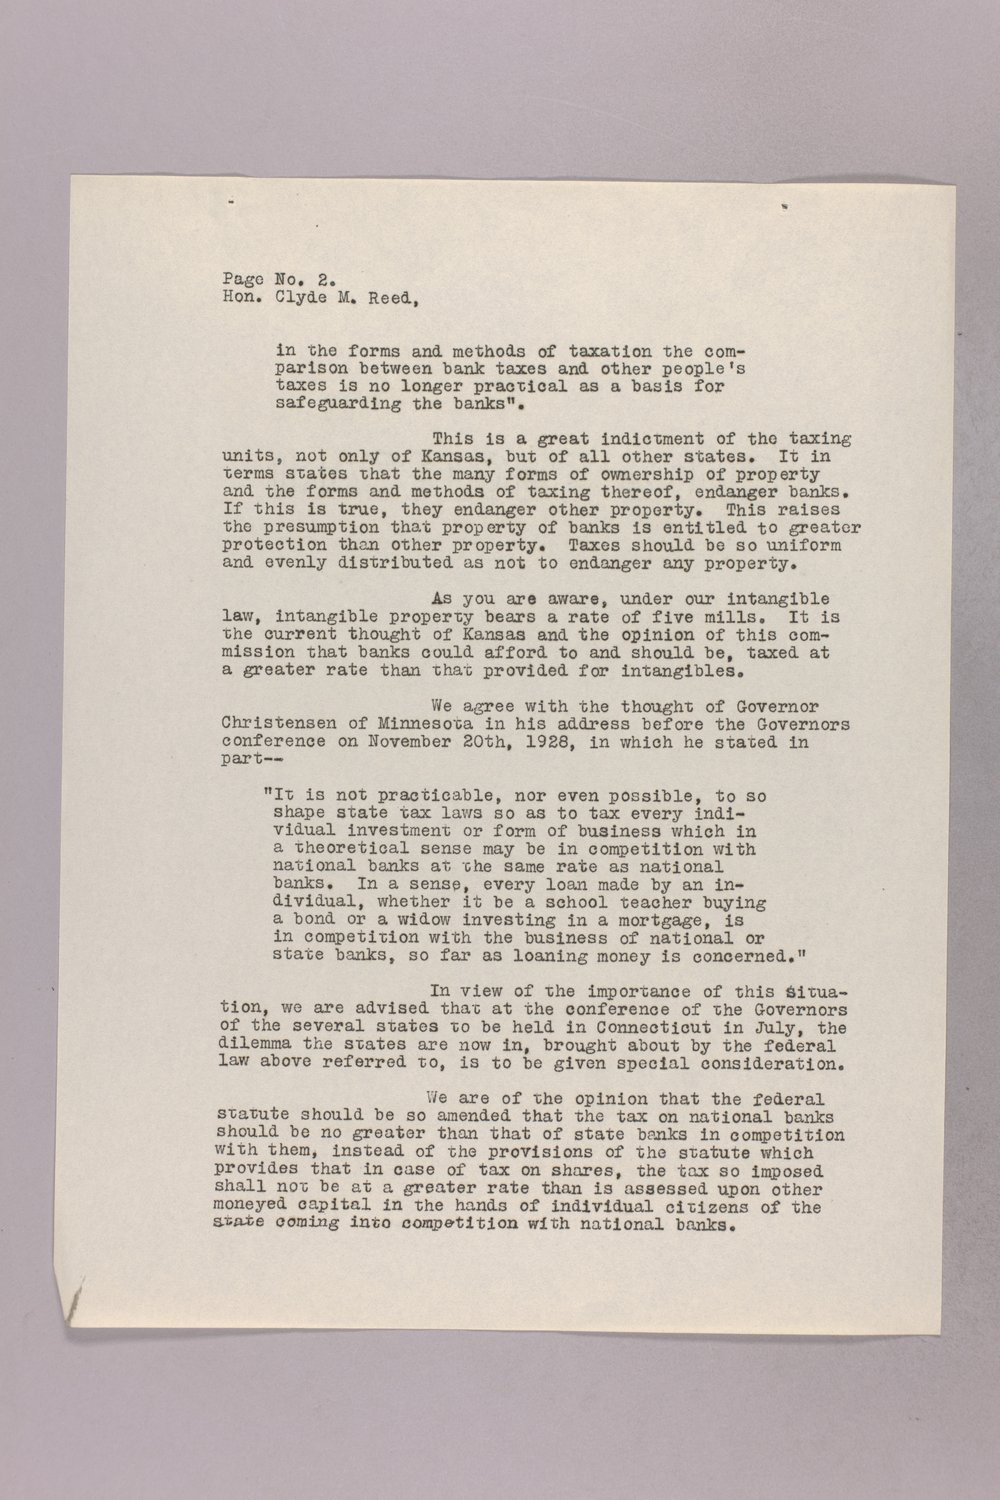 Governor Clyde M. Reed correspondence, Tax Code Commission - 10